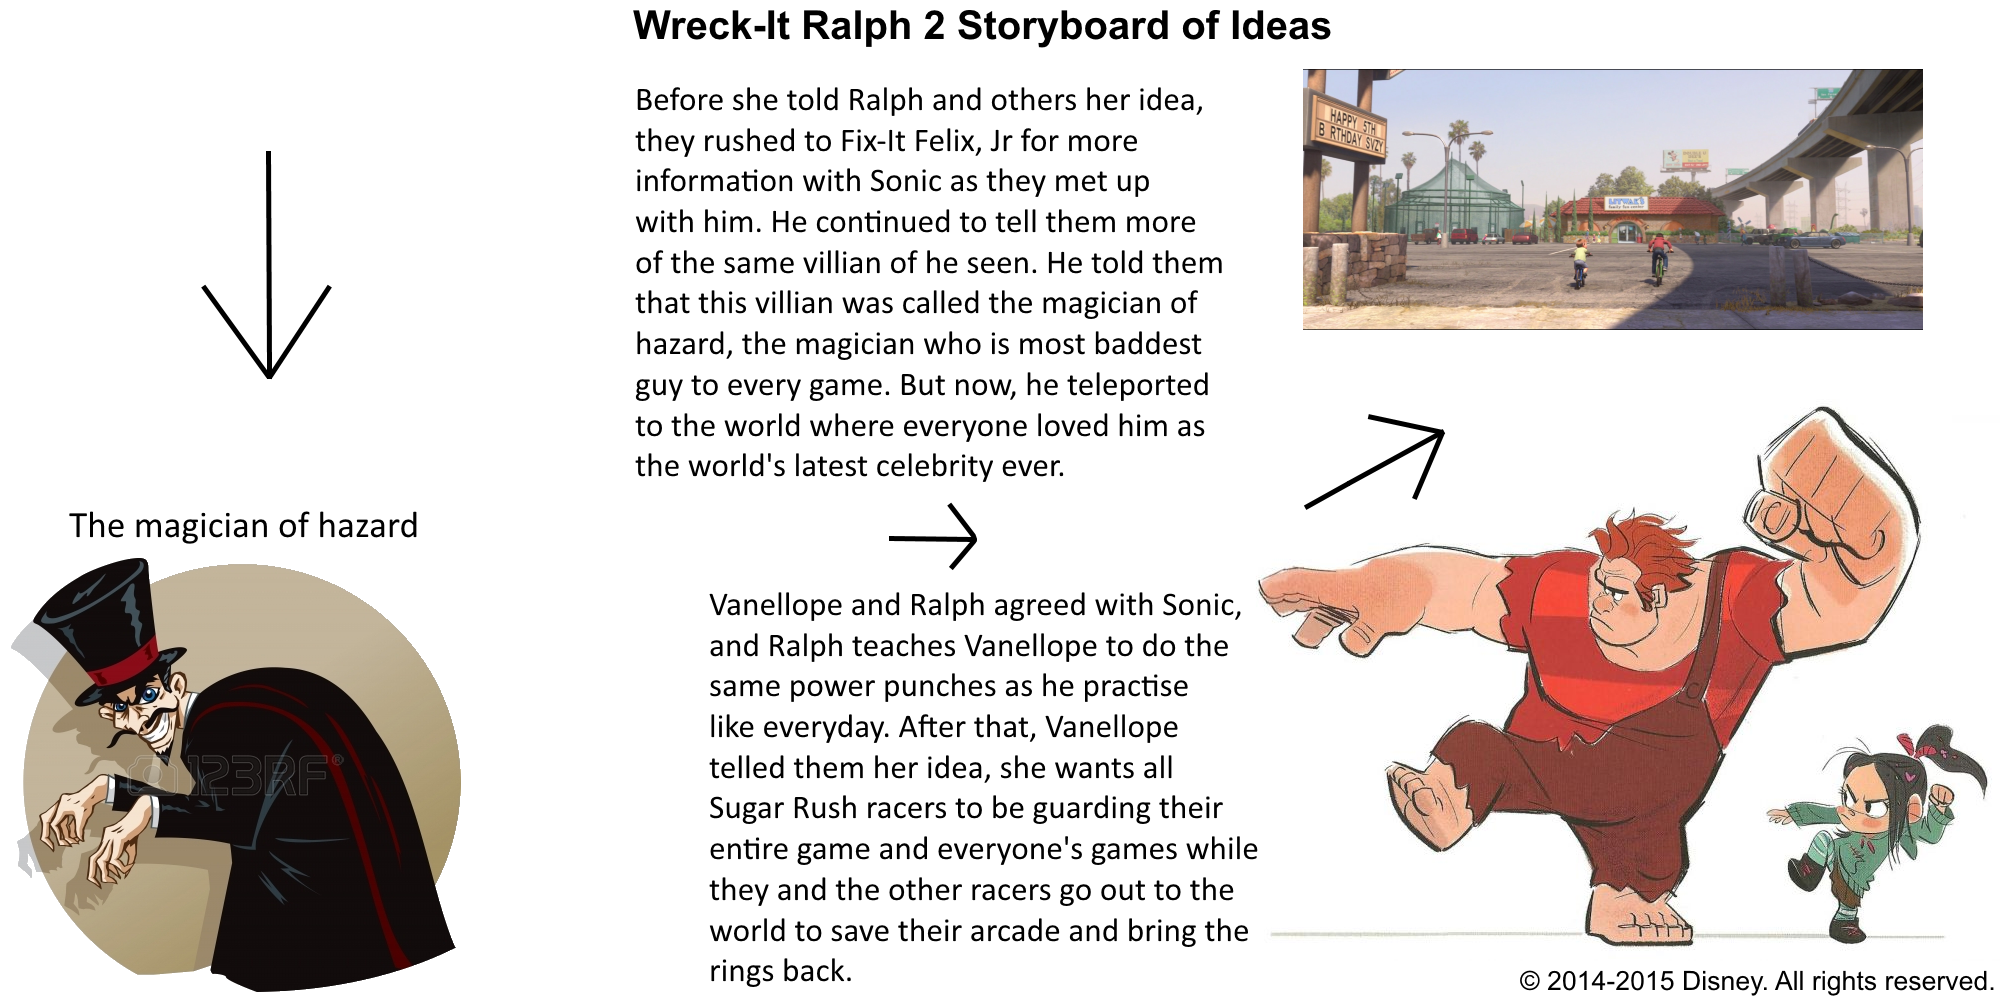 Best Lines From Wreck It Ralph 2: Wreck-It Ralph 2 Storyboard Of Ideas 5.png